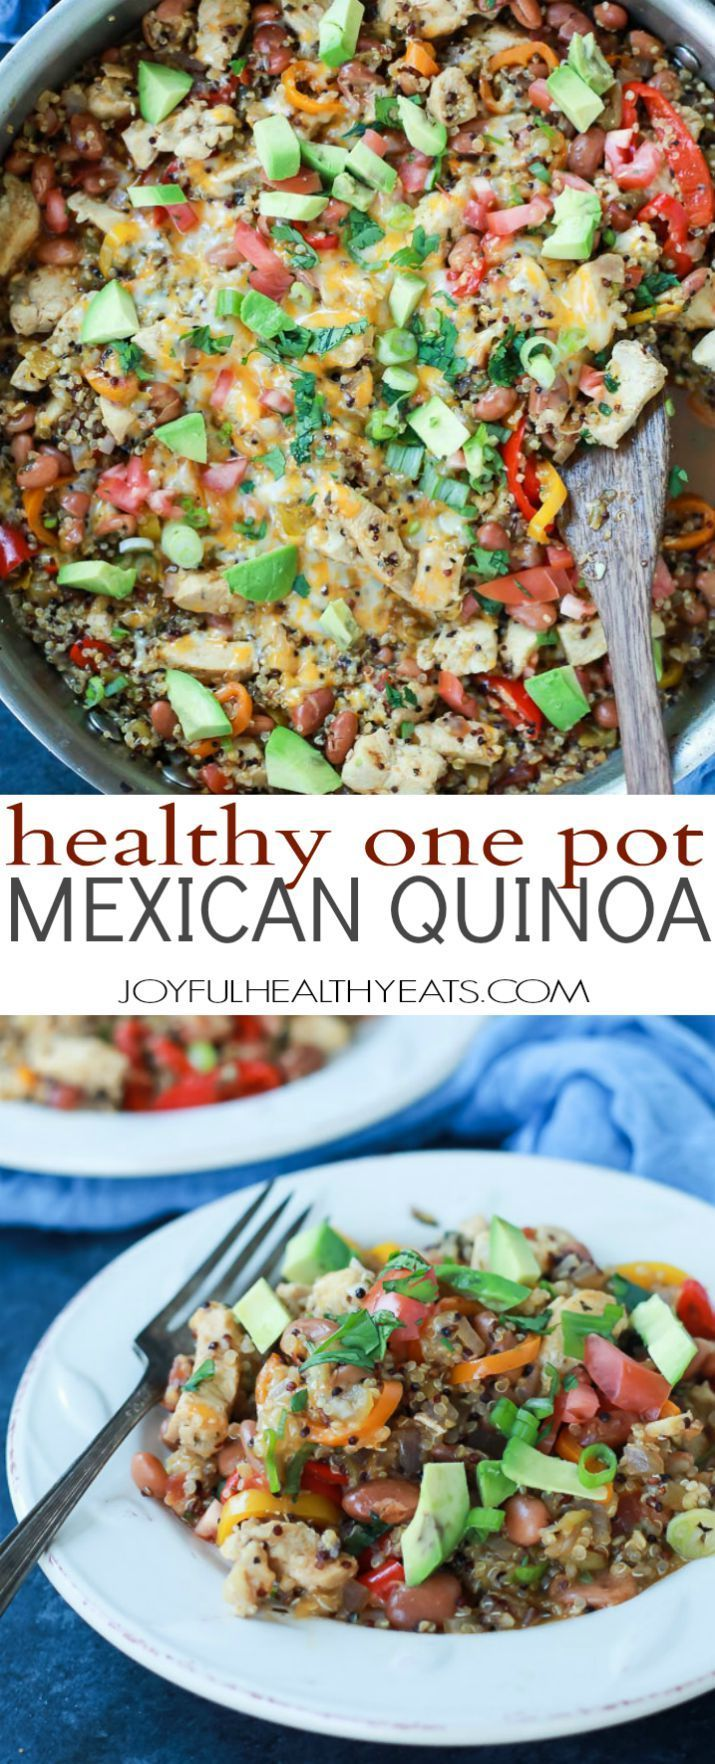 Healthy One Pot Mexican Quinoa Casserole - light, easy to make, packed with nutrients and flavor, and only 290 calories a serving! Everything is made all in the same pan, you'll love how easy this recipe is!   joyfulhealthyeats.com #glutenfree